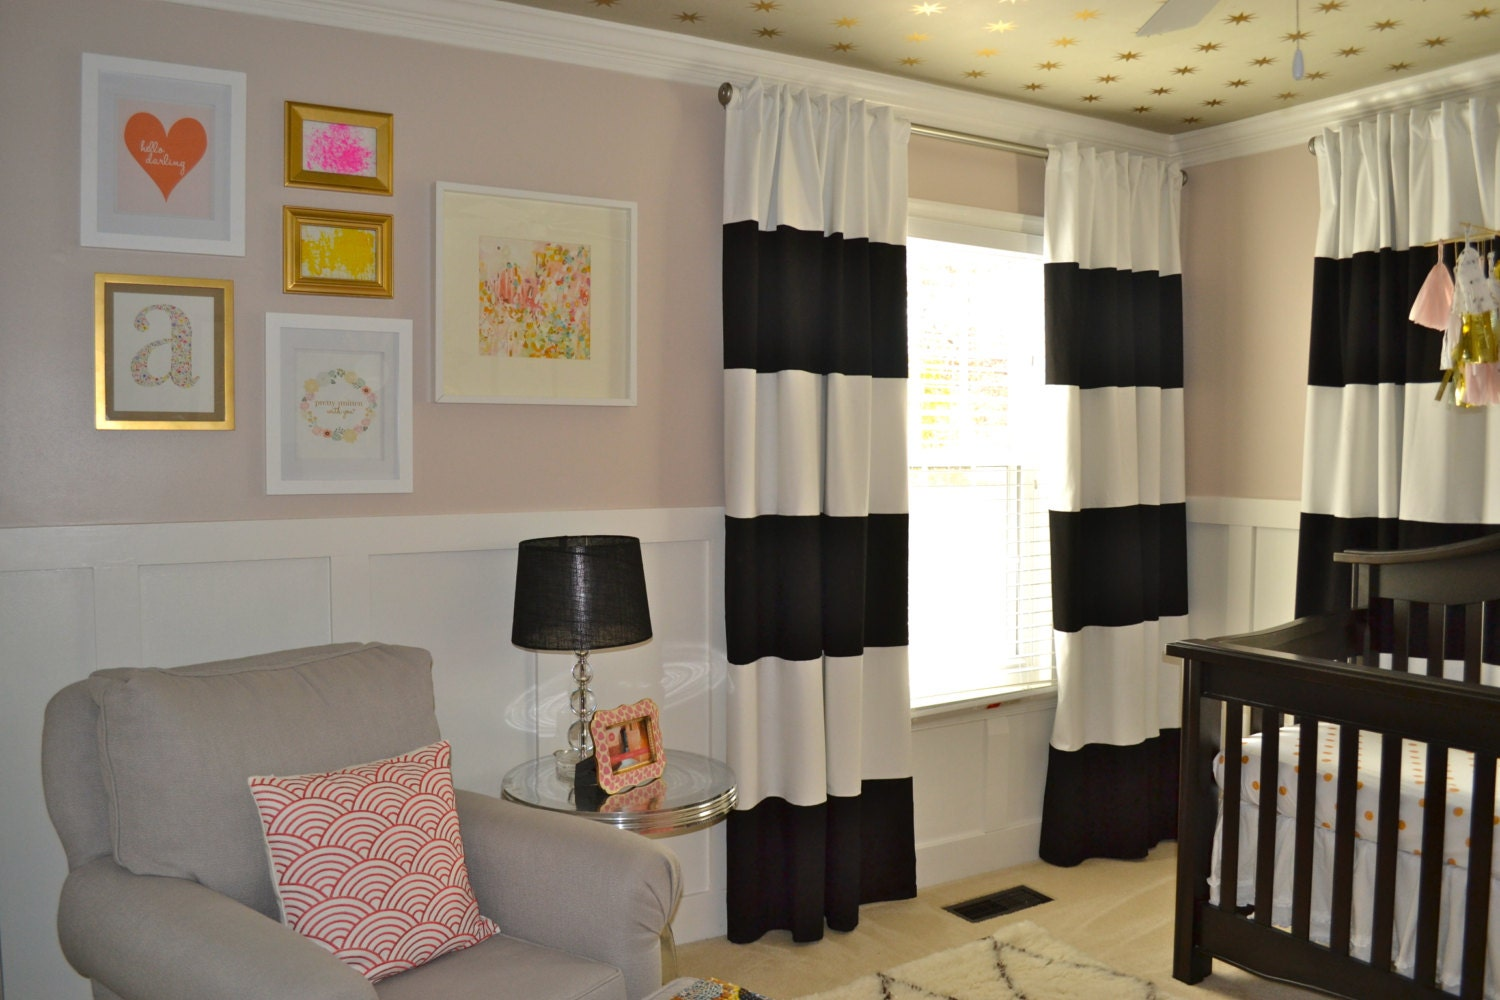 108 black and white horizontal striped curtains custom